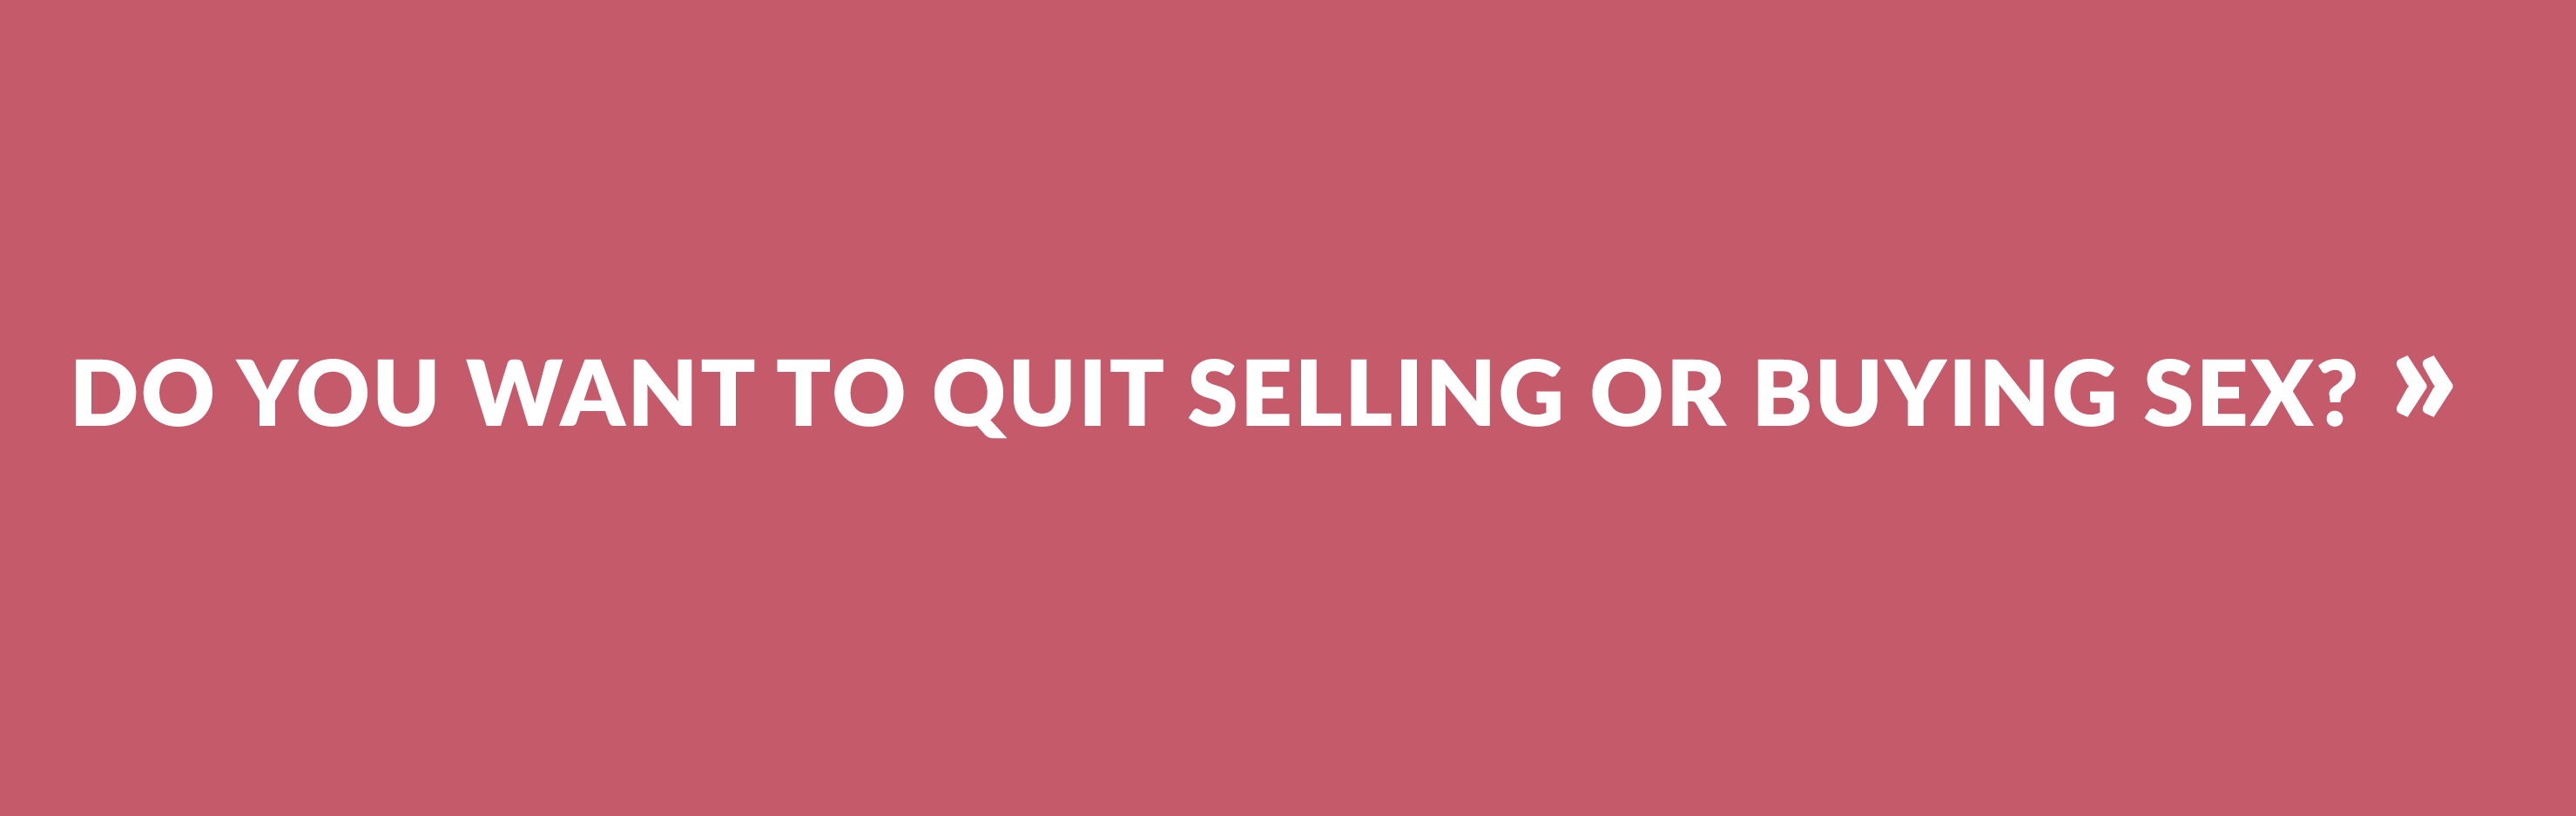 Do you want to quit selling or buying sex?